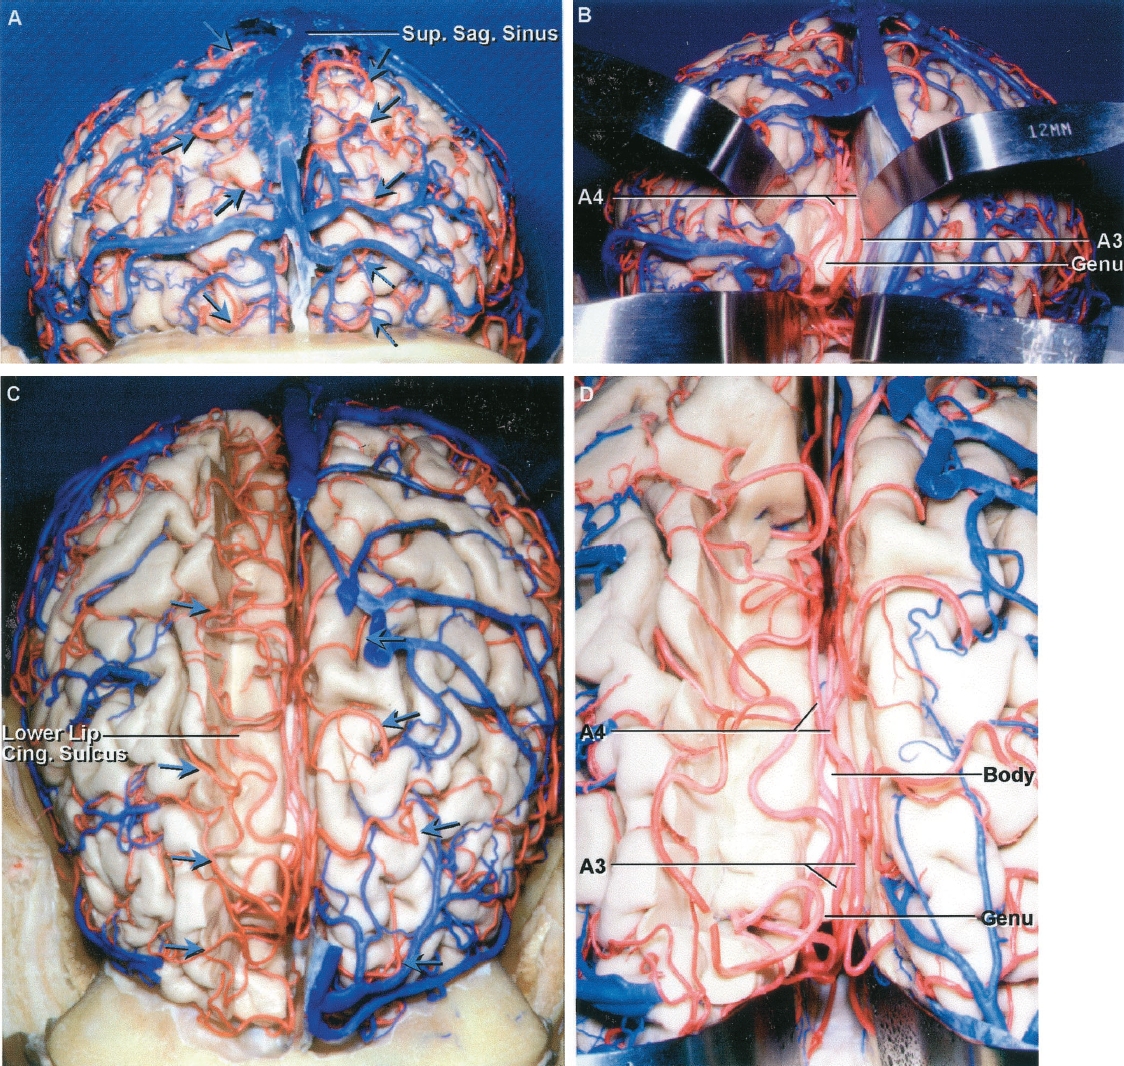 FIGURE 2.25. Anterior cerebral artery. A, anterior view of the cerebral hemispheres. The branches of the ACA cross the superior and anterior margins of the hemisphere to supply the adjacent part of the lateral convexity (arrows). These ACA branches exiting the interhemispheric fissure course deep to the venous lacunae and the cortical veins entering the superior sagittal sinus. B, the falx and right frontal lobe have been retracted to expose the A3s passing around the genu of the corpus callosum deep in the interhemispheric fissure. The A4s course above the anterior part of the callosal body. C, the cortical strip above the right cingulate sulcus has been removed, while preserving the ACA branches looping deep within the sulci on the medial surface of the hemisphere. These branches often course within a sulci along the superior margin to reach the lateral surface. D, enlarged view of the branches of the ACA coursing deep within the cingulate sulcus. Some branches course deep within sulci along the superior margin of the hemisphere rather than looping over the upper edge of the superior margin to reach the lateral surface. Cing., cingulate; Sag., sagittal; Sup., superior.